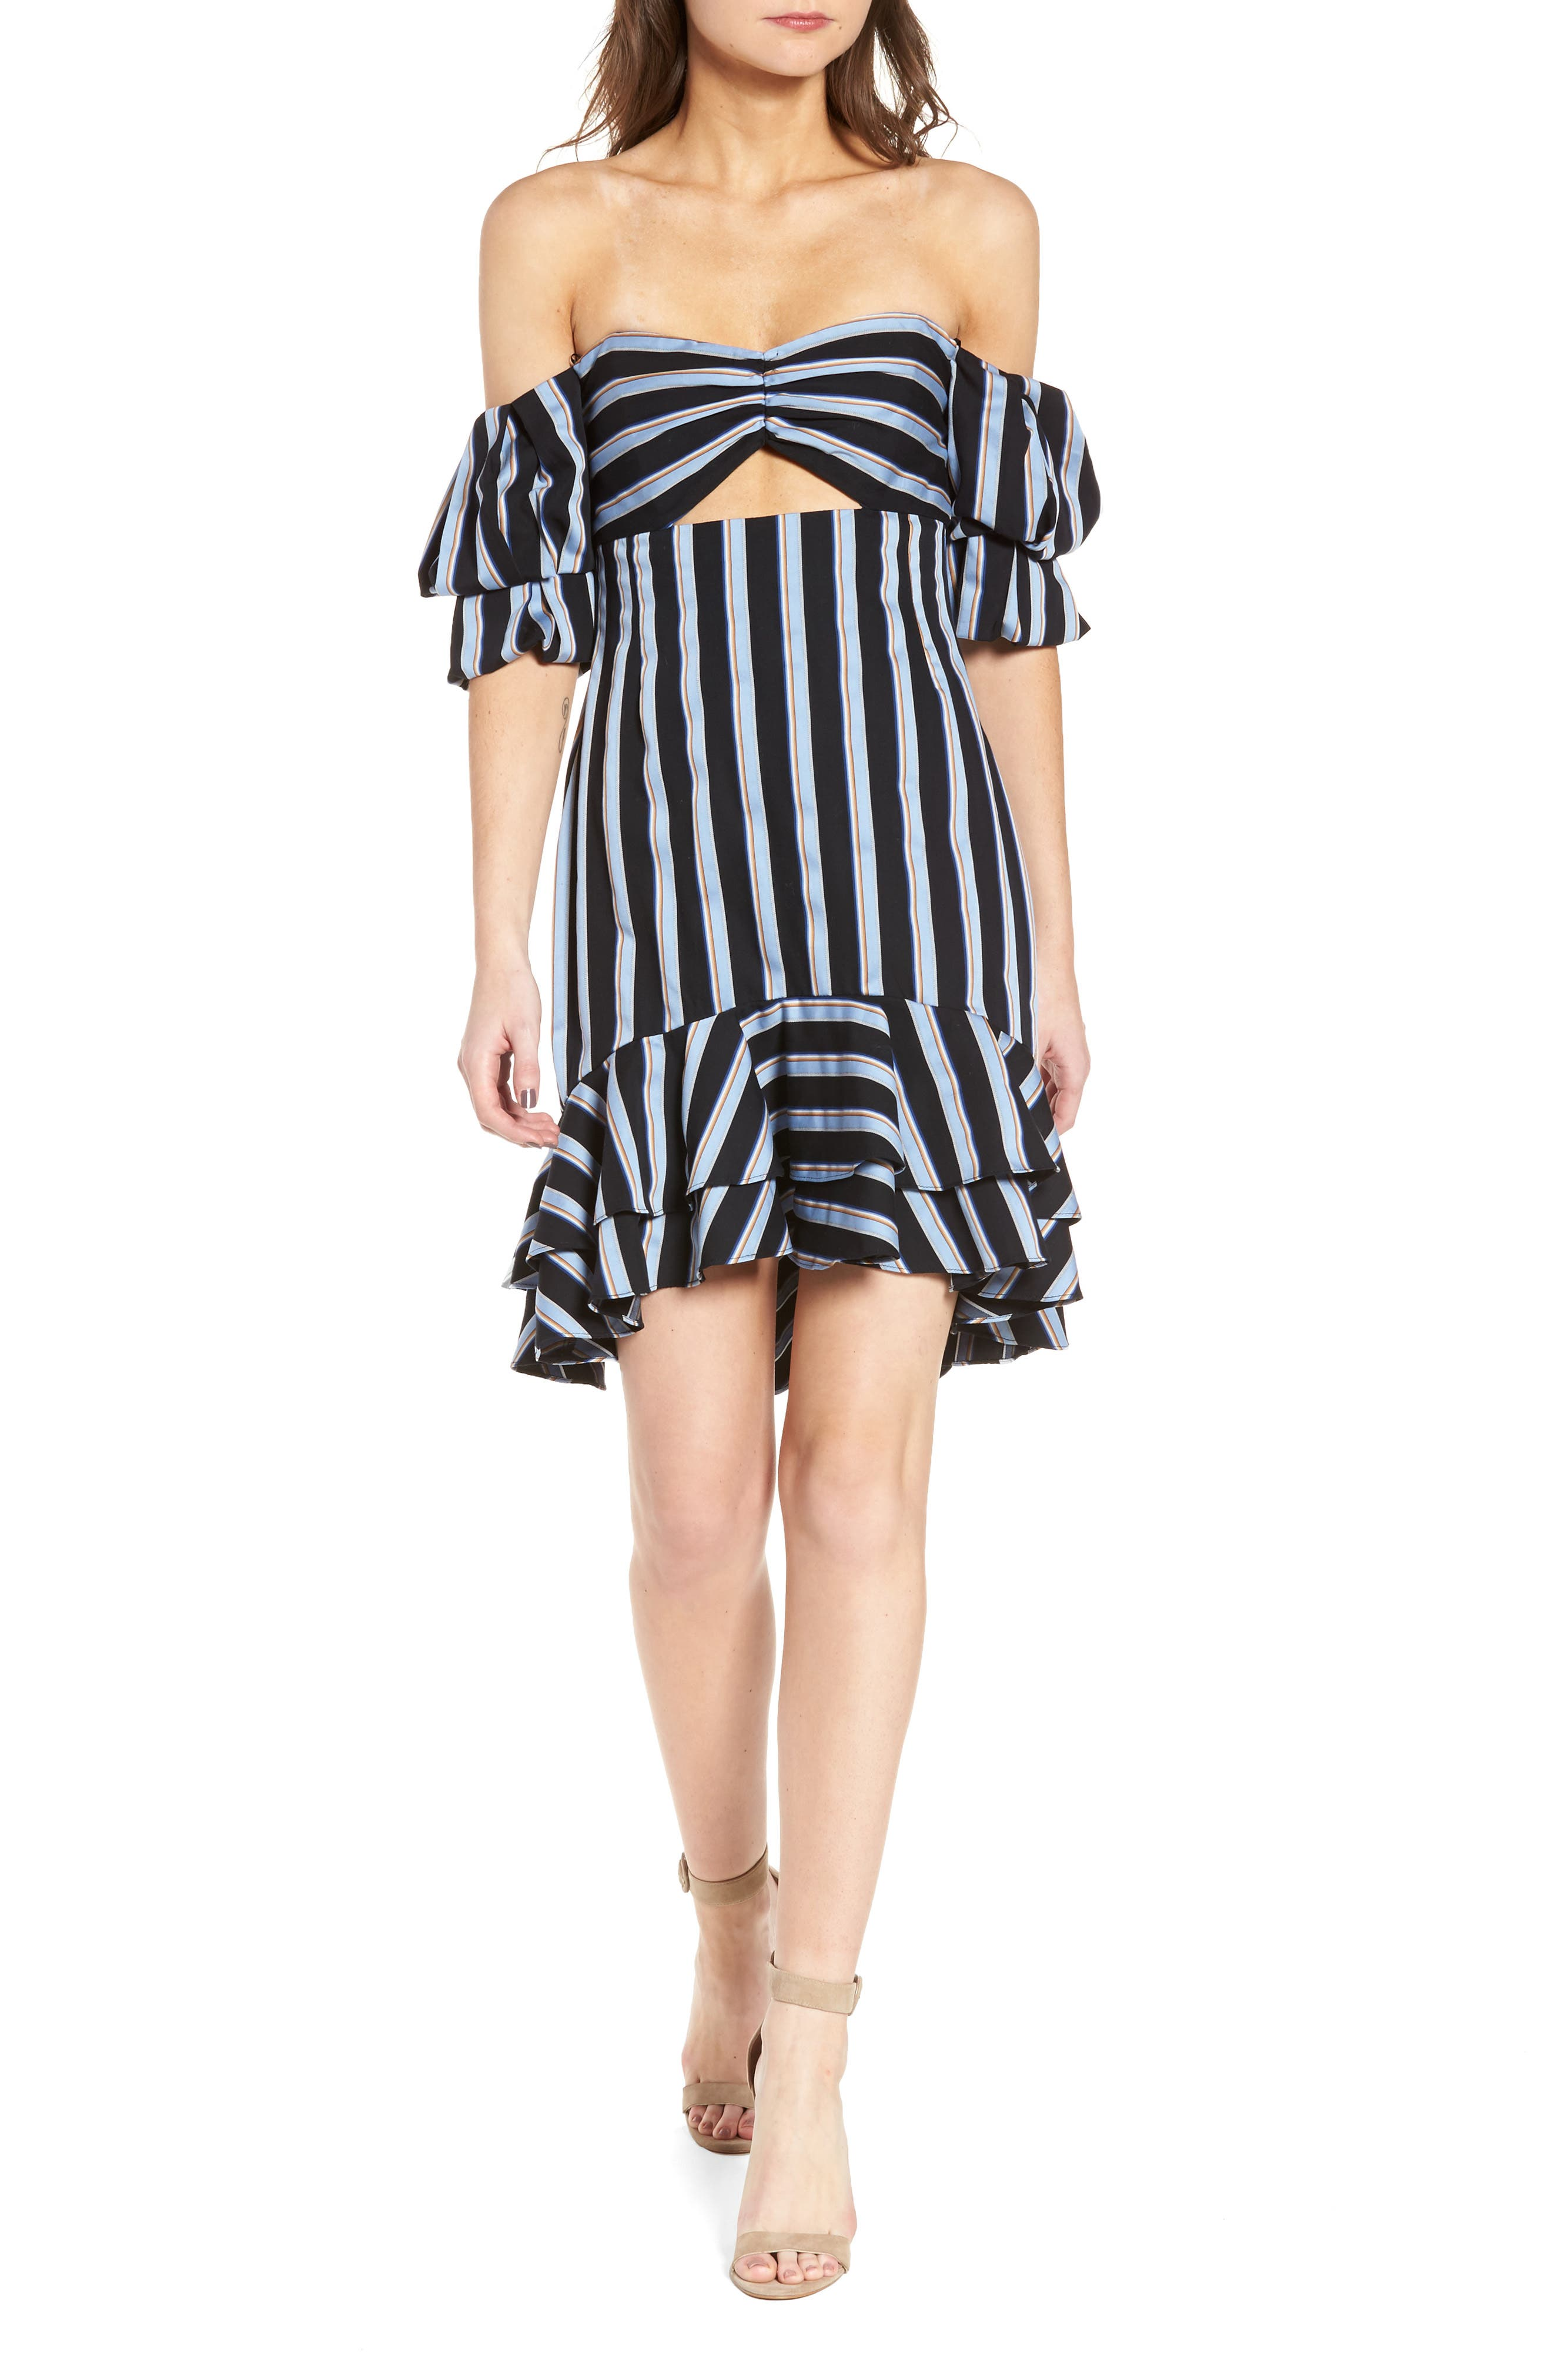 WAYF Tegan Off the Shoulder Dress